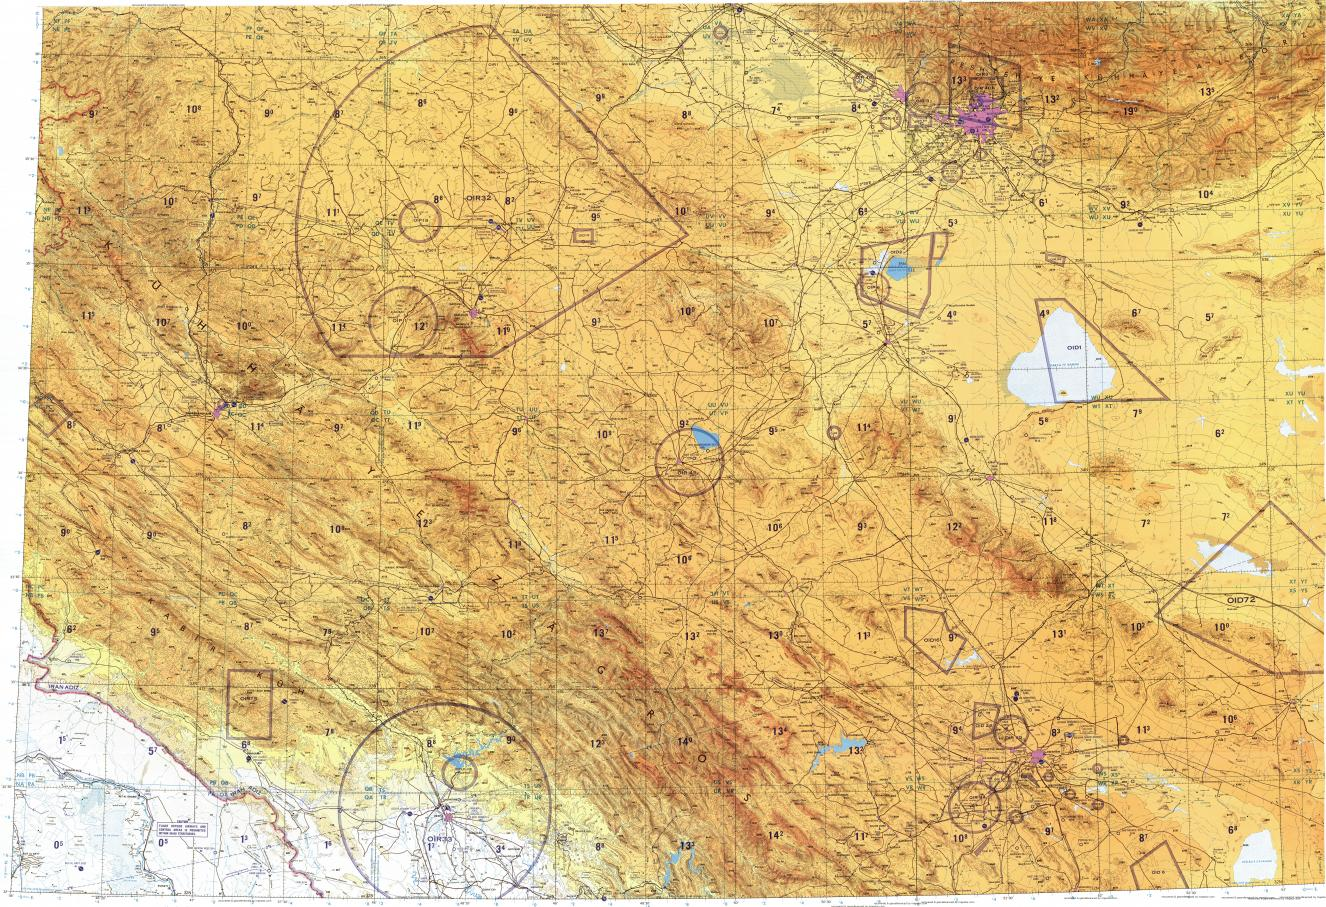 Download Topographic Map In Area Of Tehran Toveh Zifreh Mapstor Com